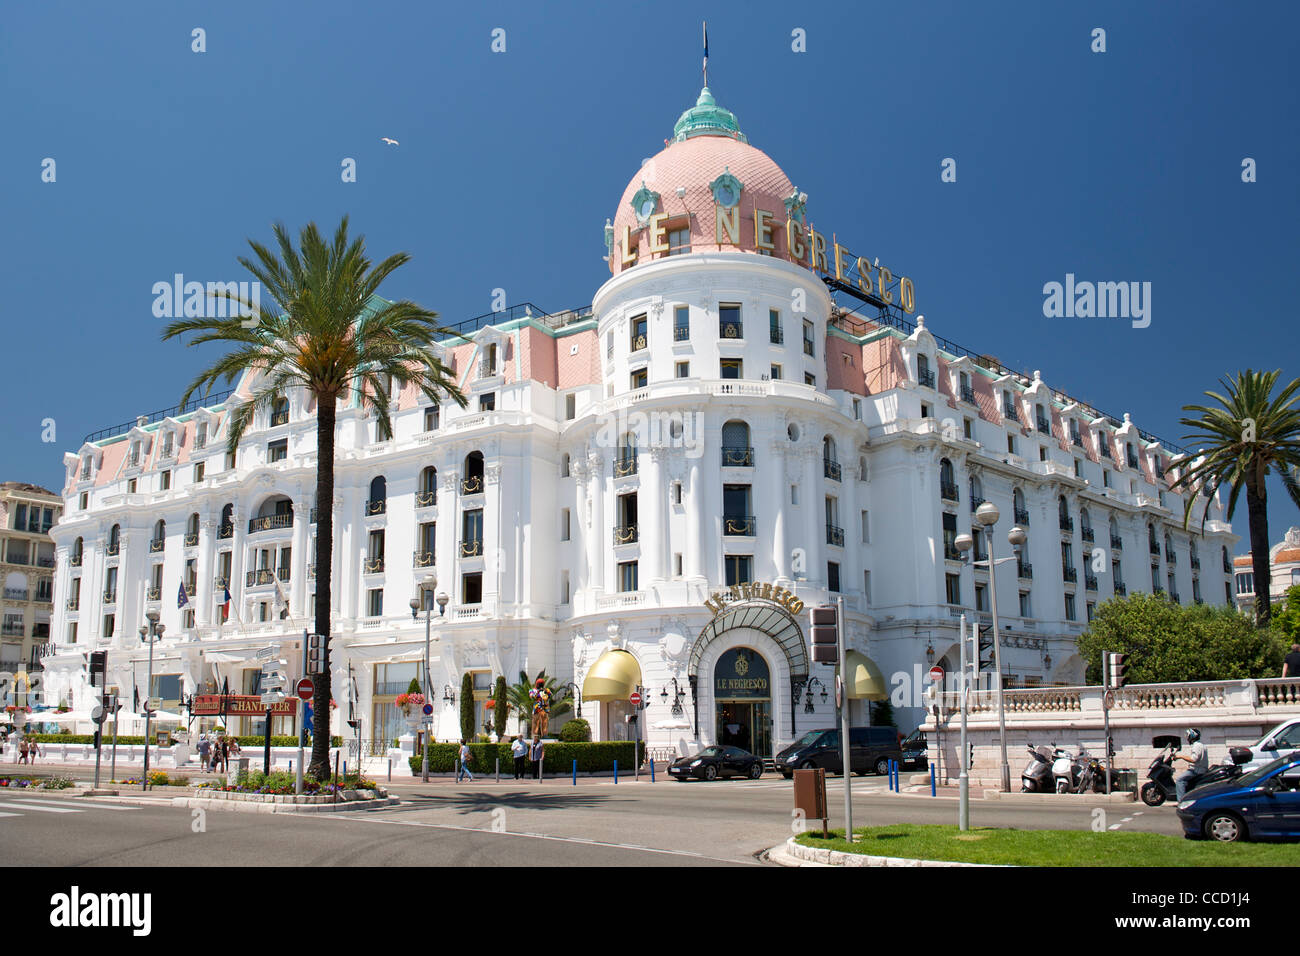 The Negresco hotel in Nice on the Mediterranean coast in southern France. - Stock Image